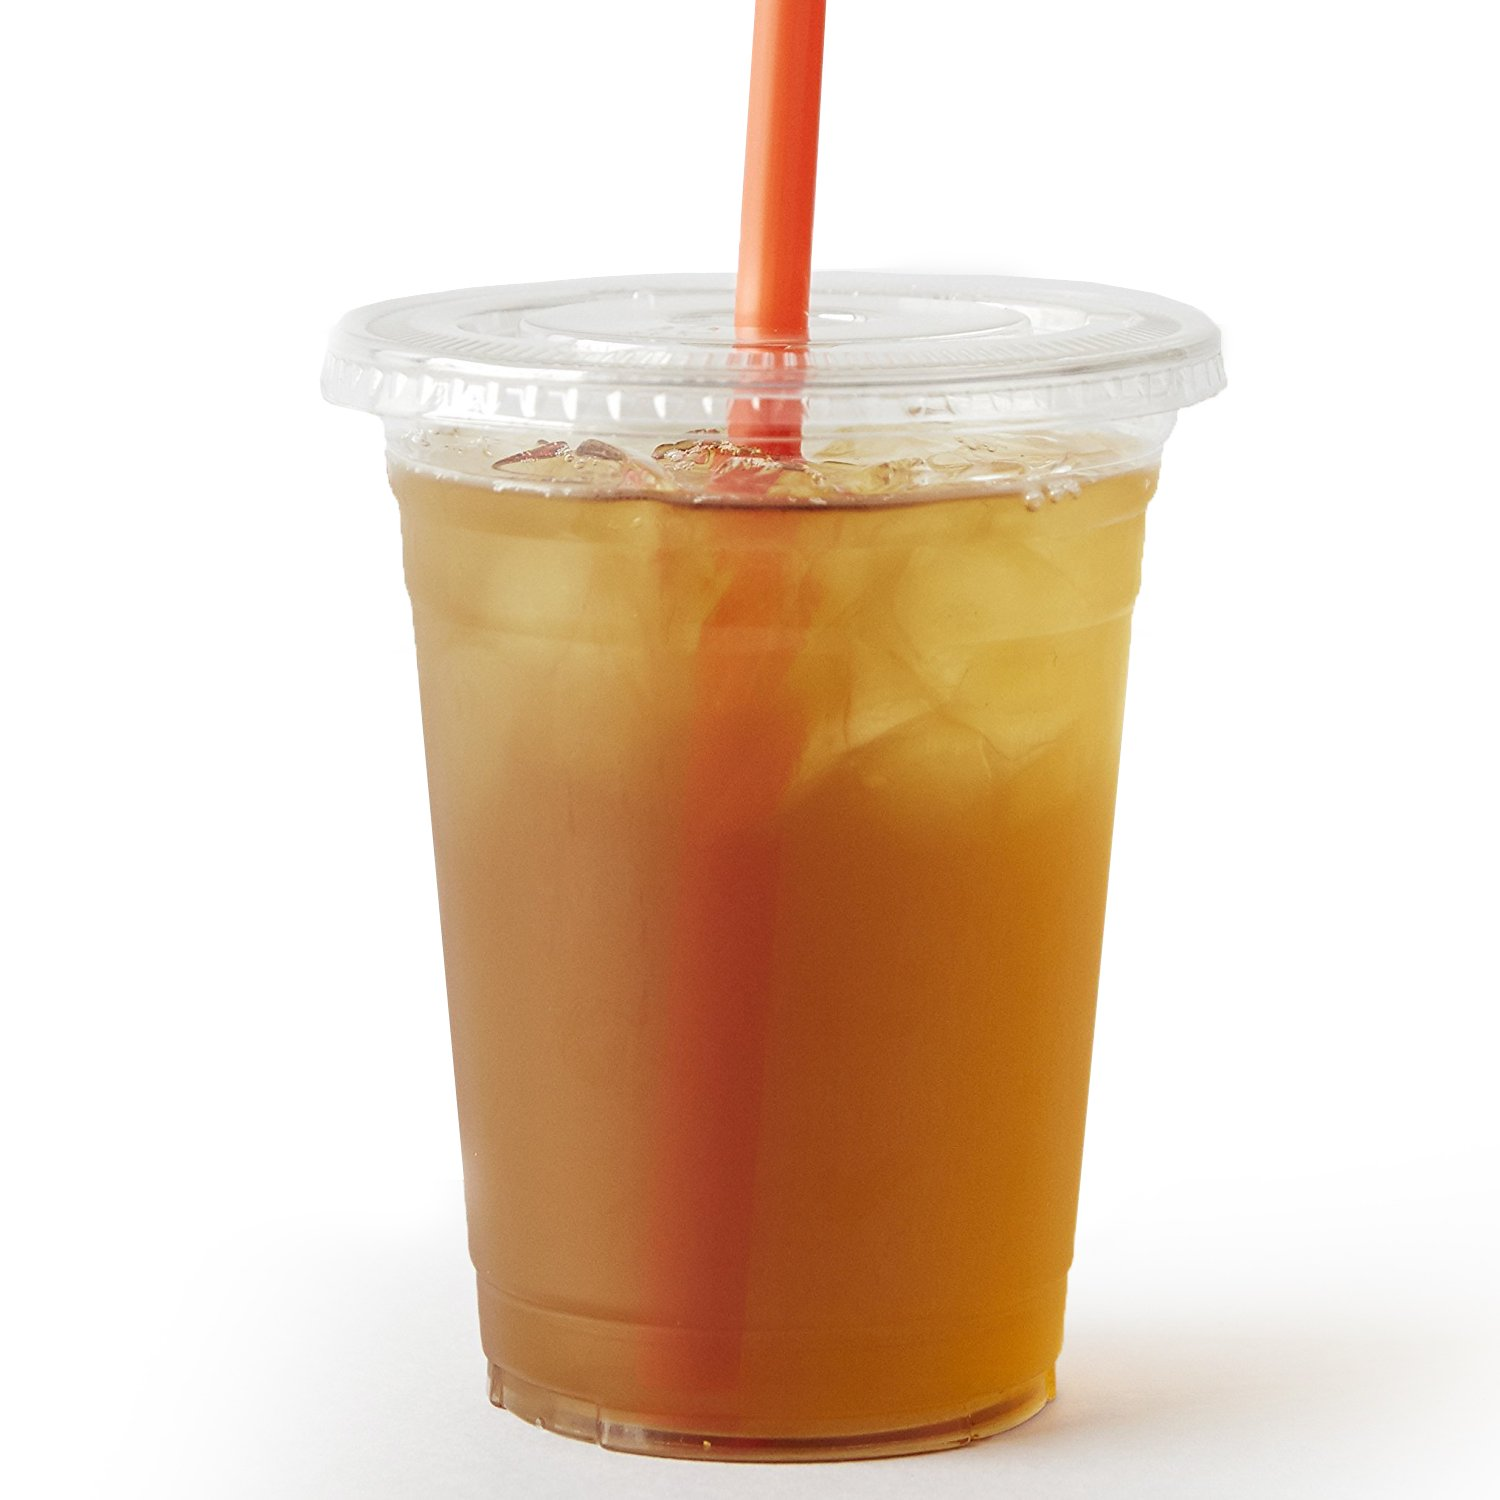 100 Sets 16 oz. Plastic CRYSTAL CLEAR Cups with Flat Lids [by COMFY PACKAGE] for Cold Drinks, Iced Coffee, Bubble Boba, Tea, Smoothie etc. by Comfy Package (Image #1)